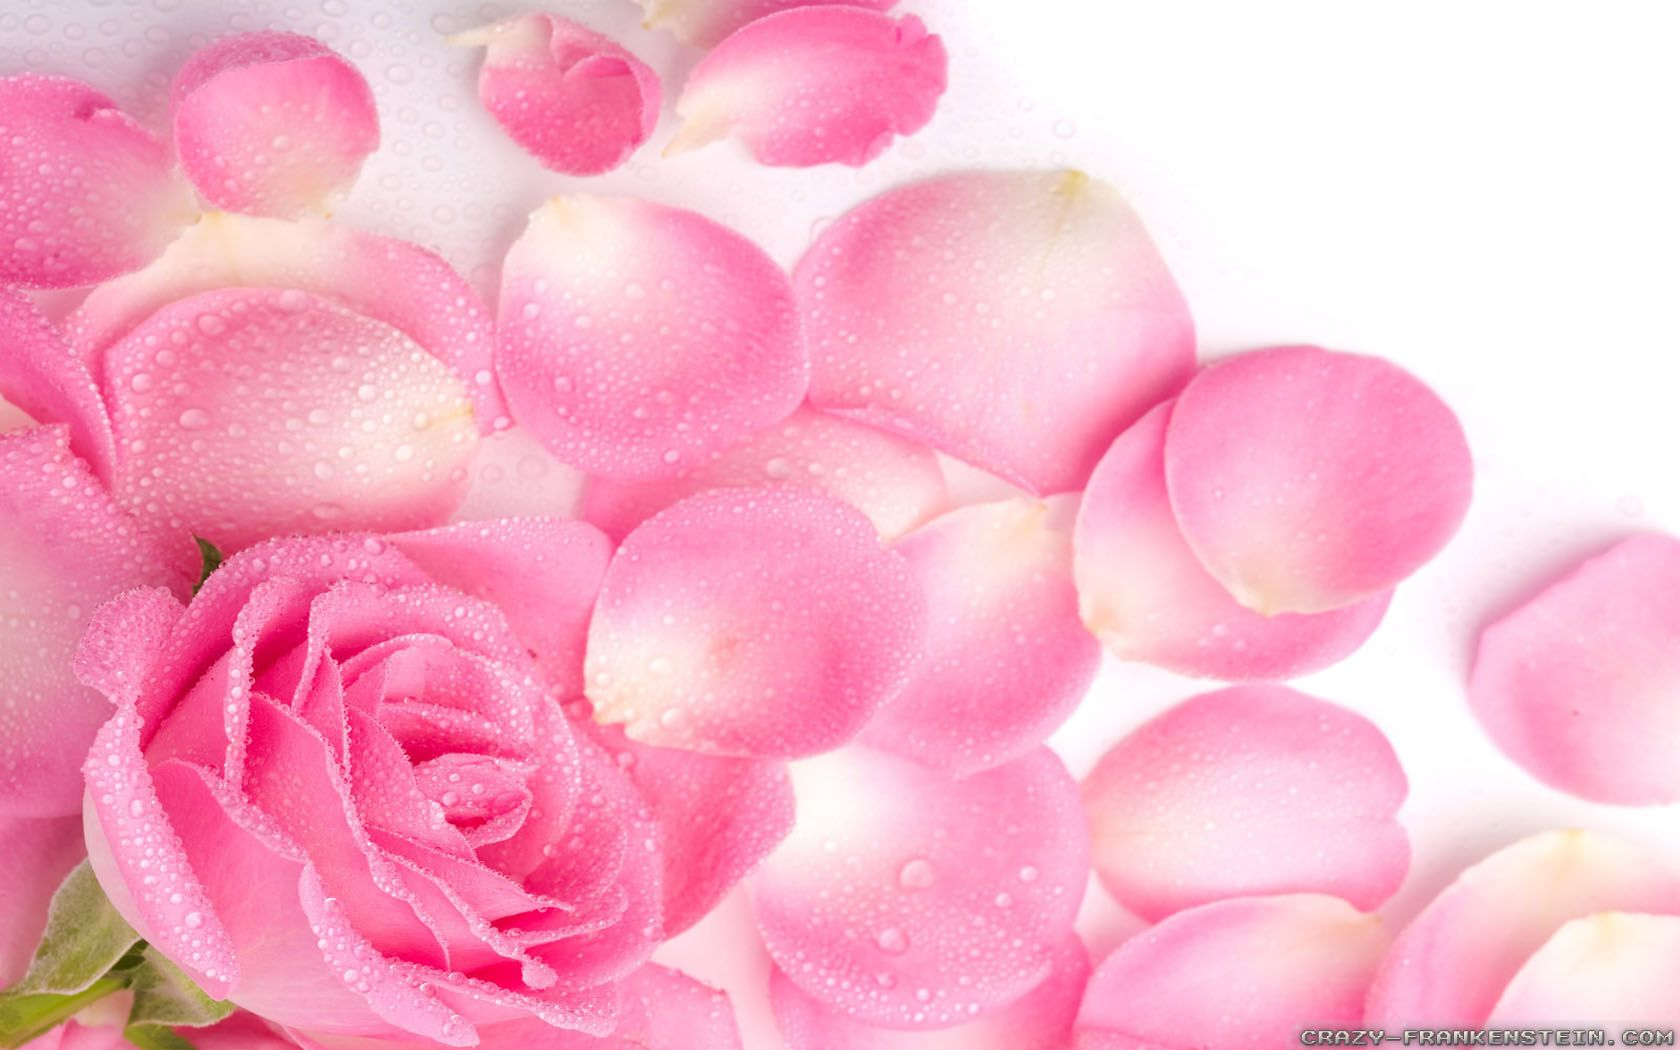 Aesthetic Rose Computer Wallpapers - Top Free Aesthetic Rose Computer Backgrounds - WallpaperAccess